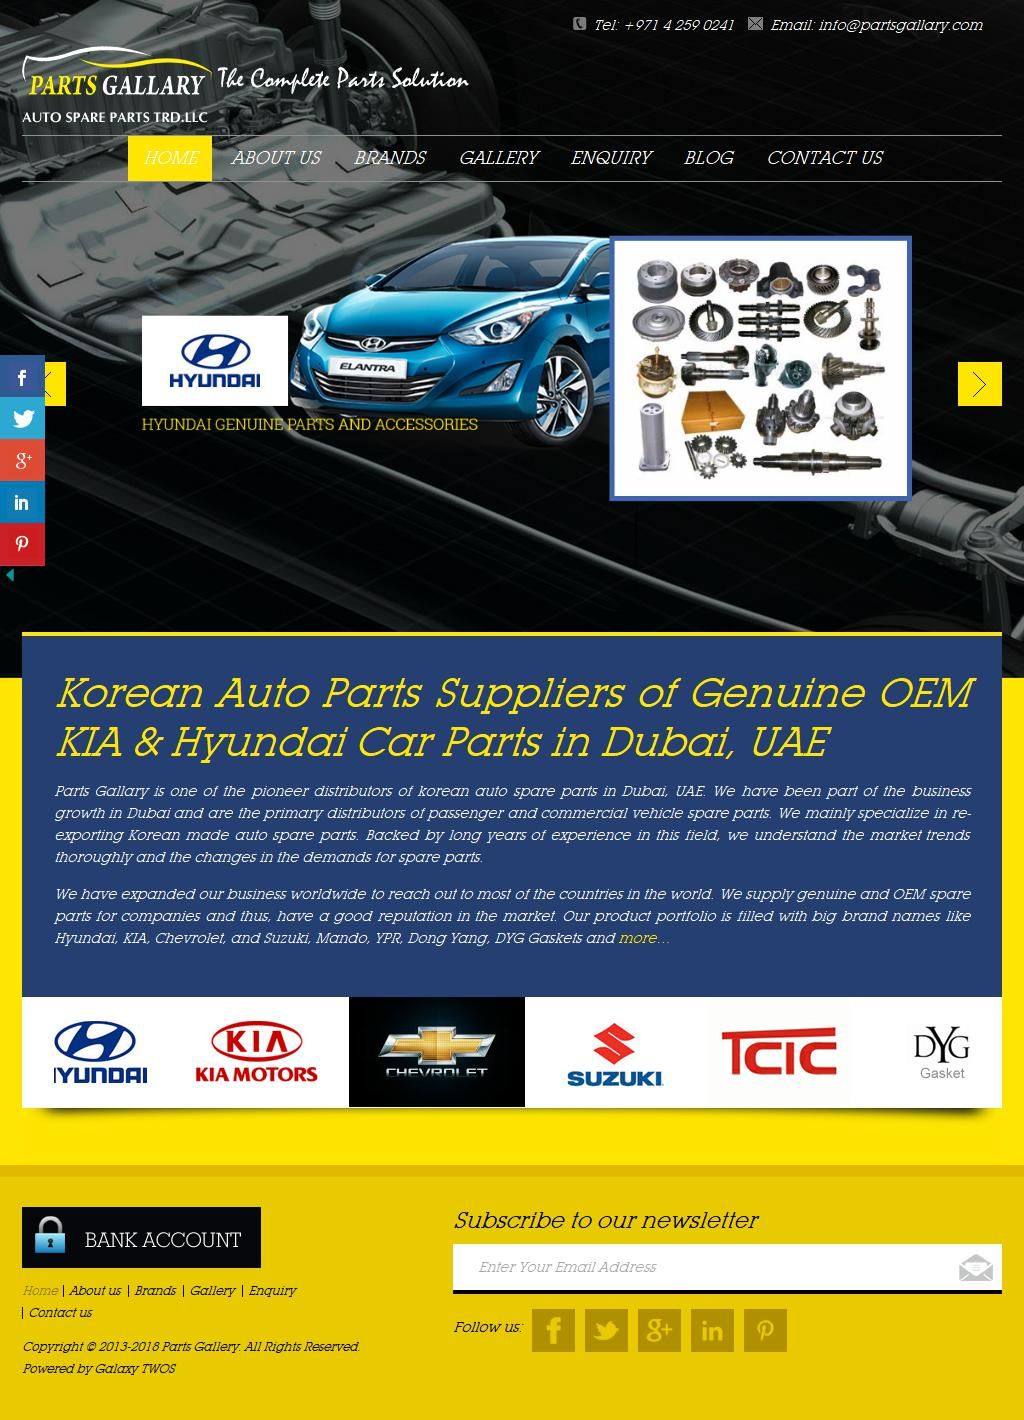 Parts Gallary Auto Spare Parts Trading Company 7 Sikka 32a G